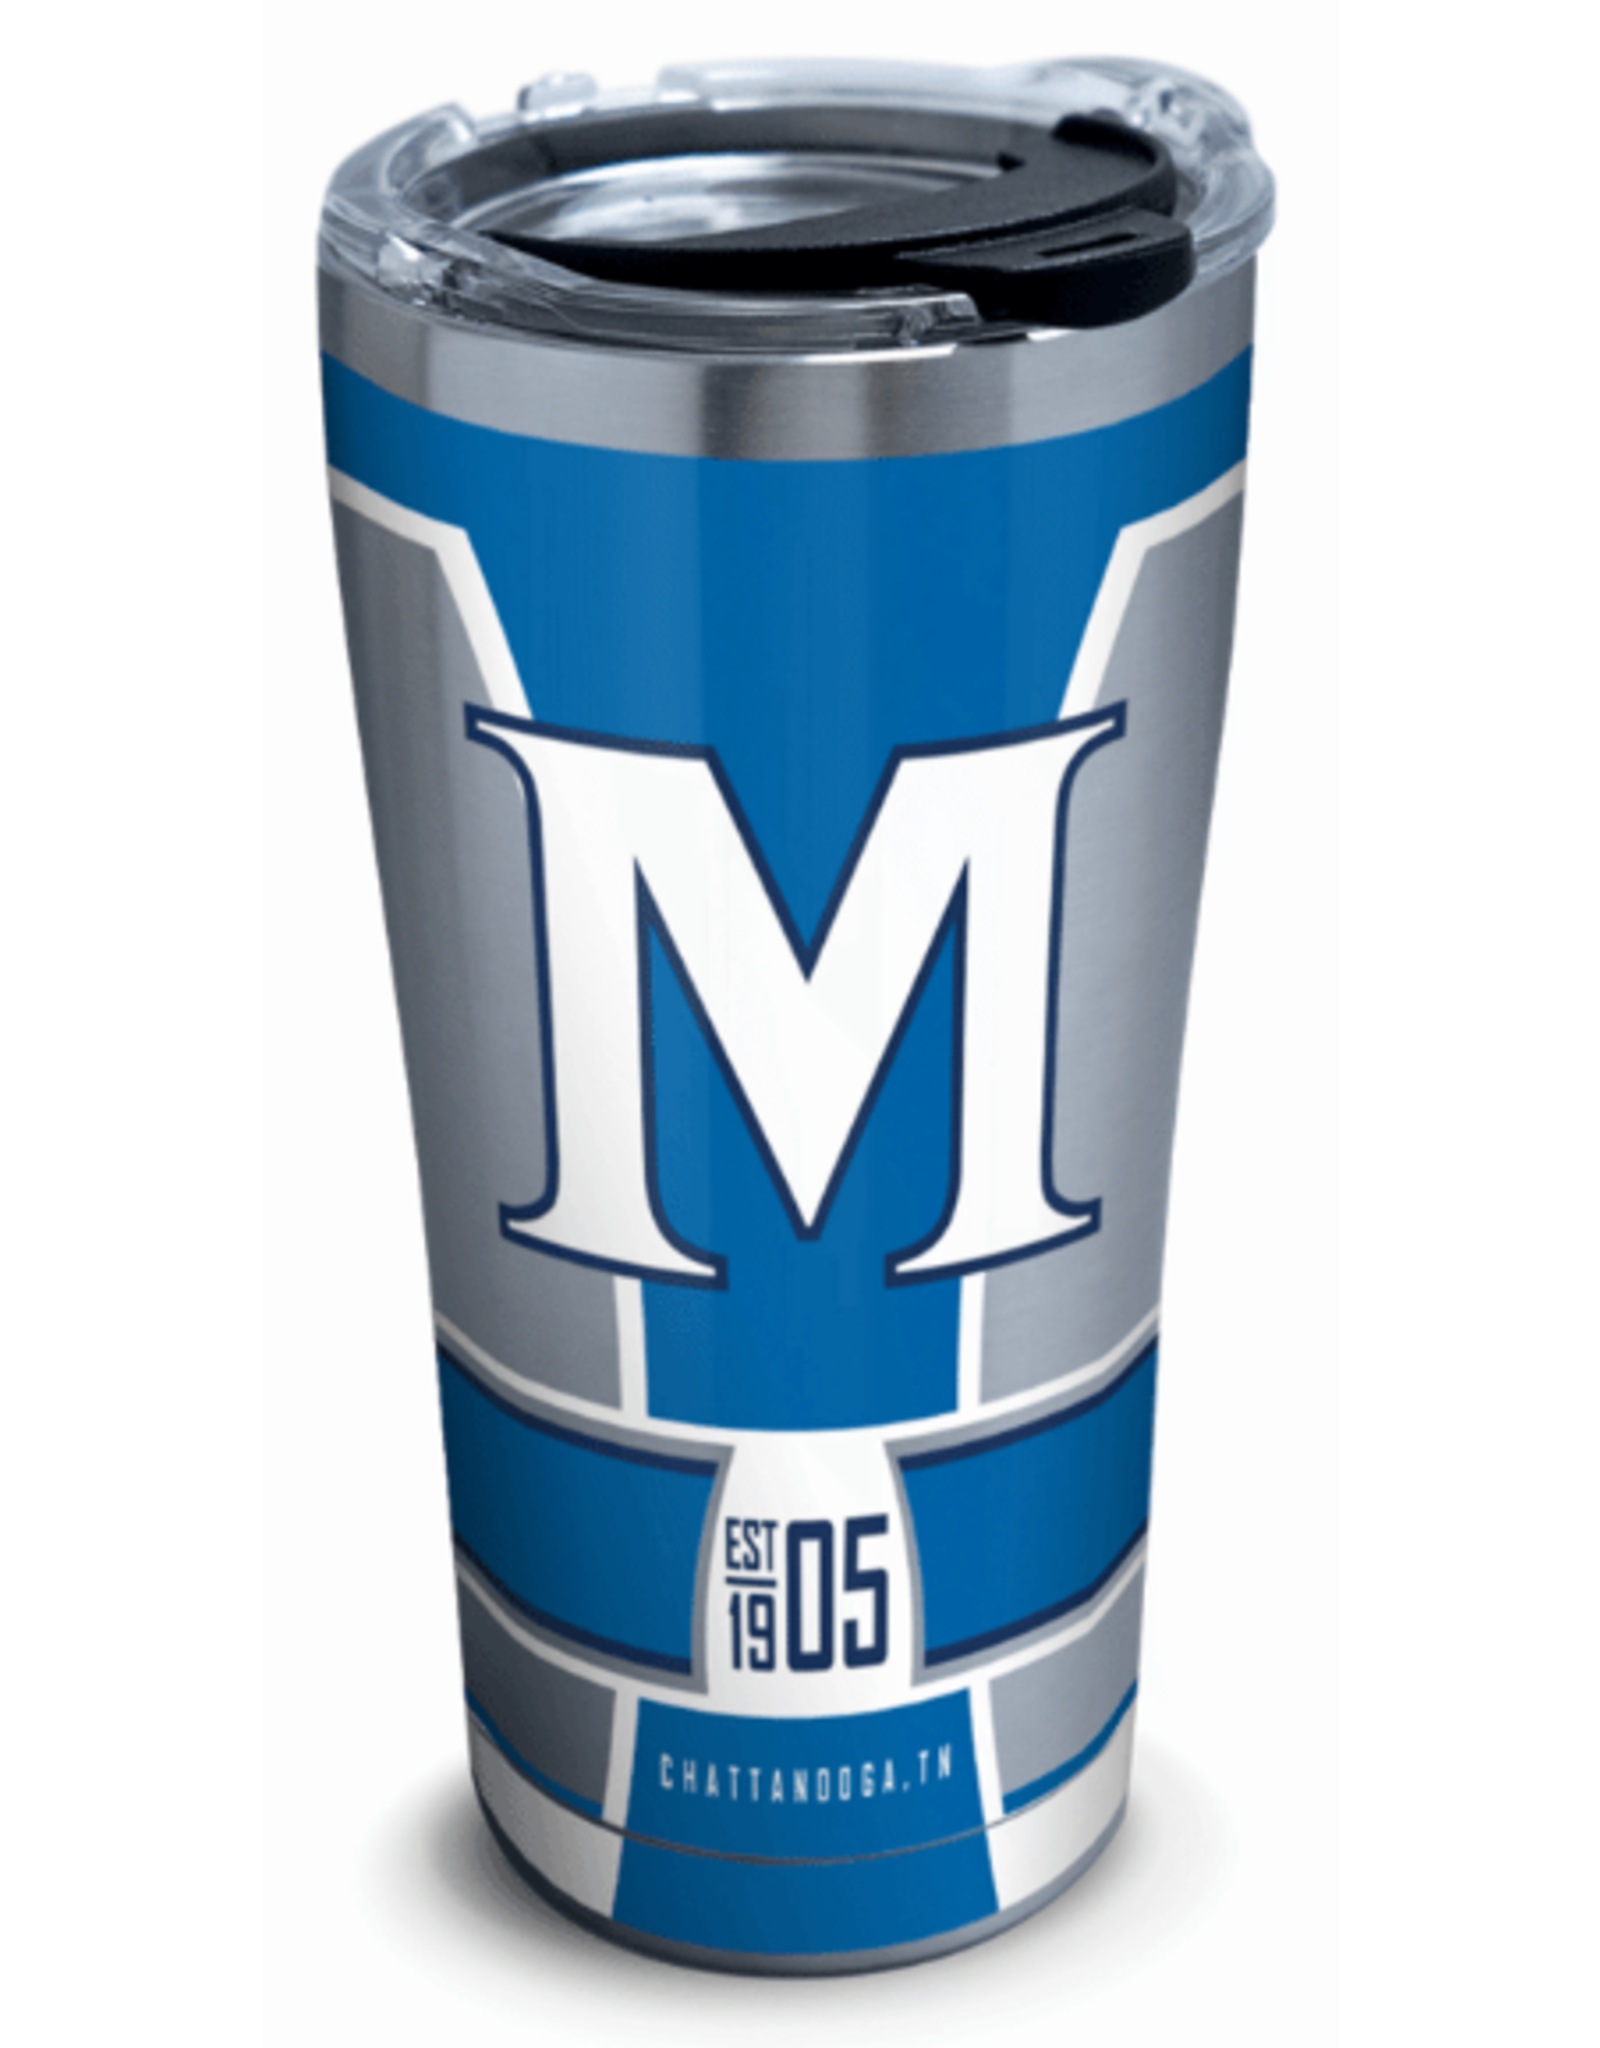 TERVIS STAINLESS STEEL SPIRIT CUP